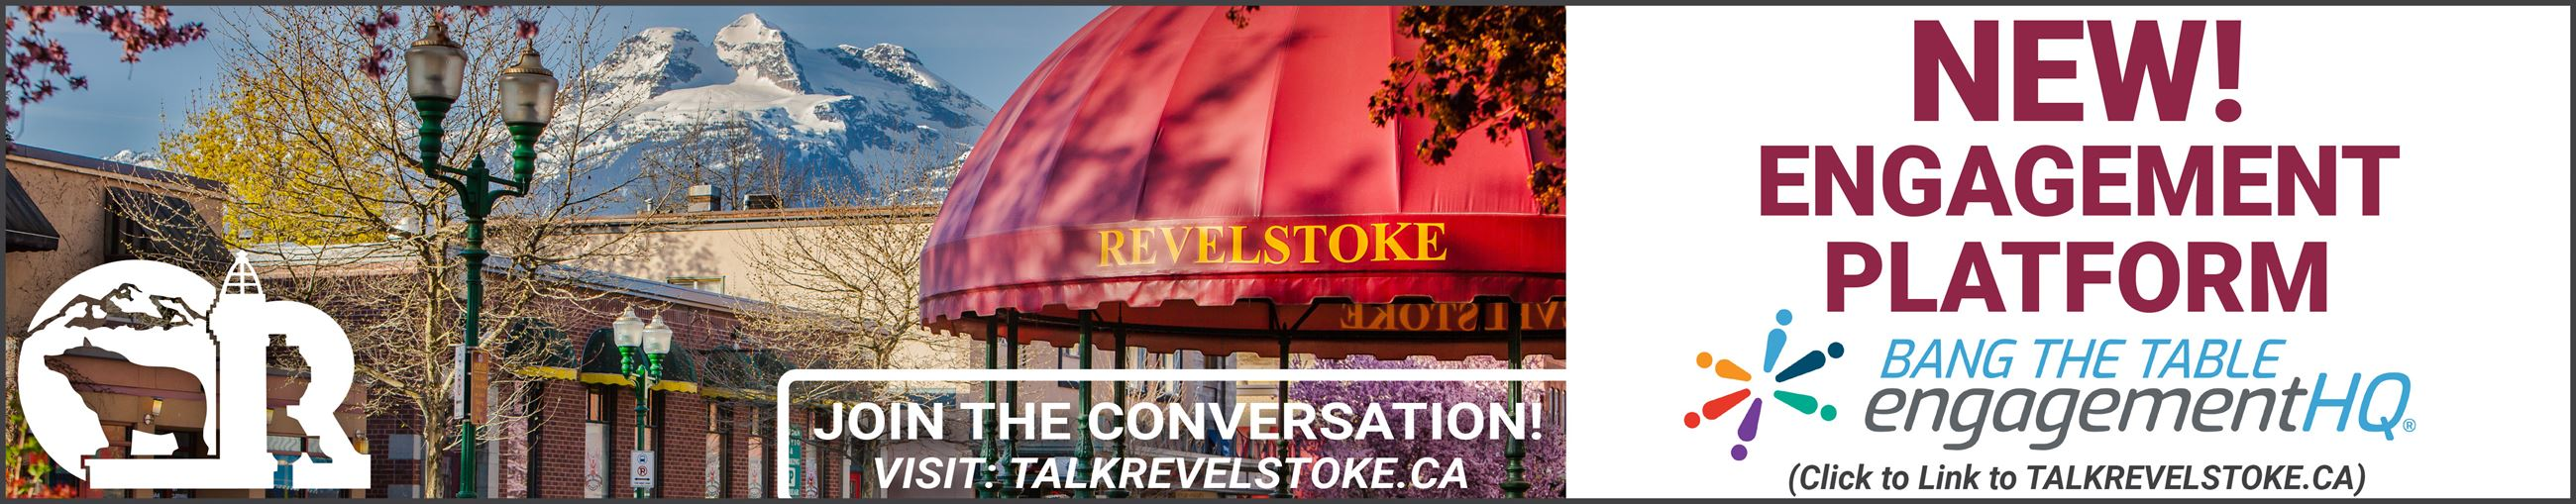 TalkRevelstoke.ca Announcment